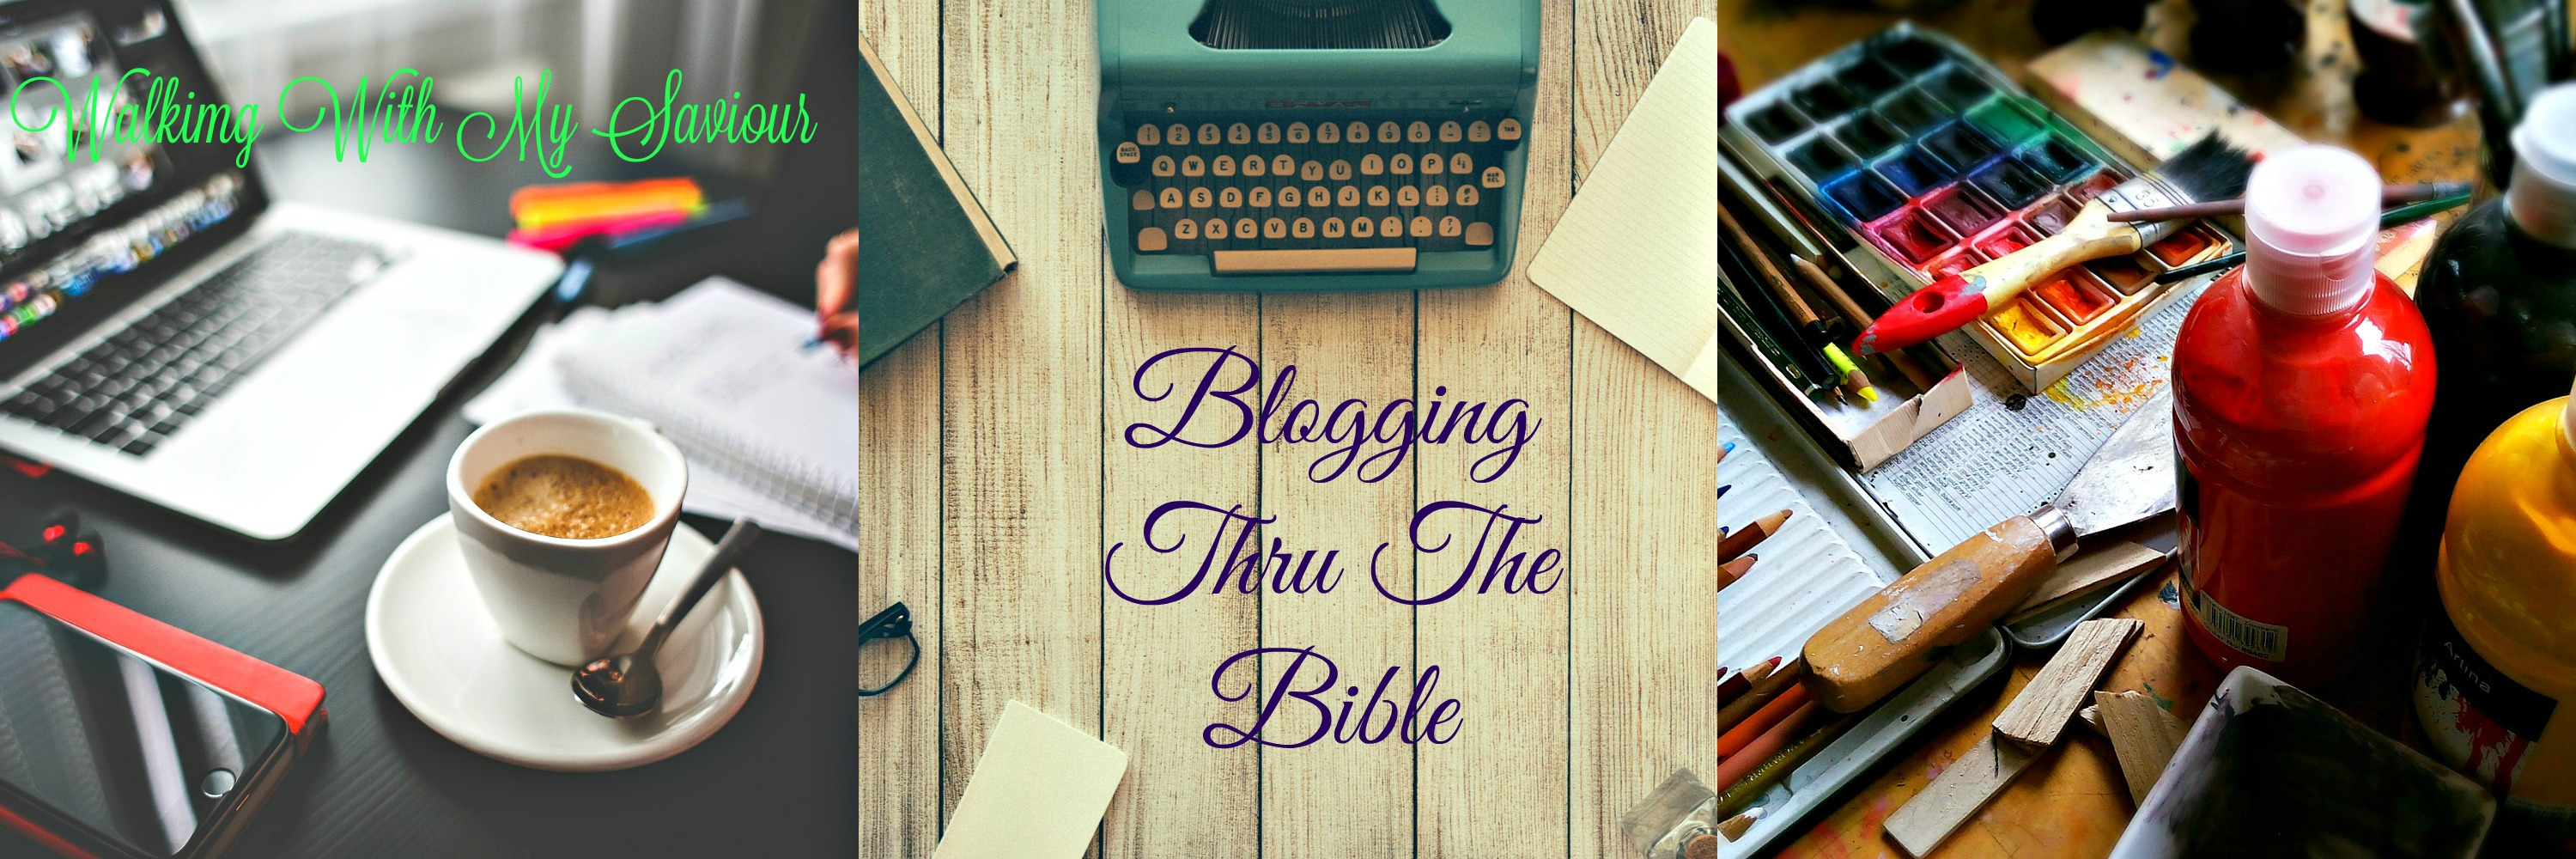 BLOGGING THRU THE BIBLE:  Weekly Challenges & Resources for Rest & Release